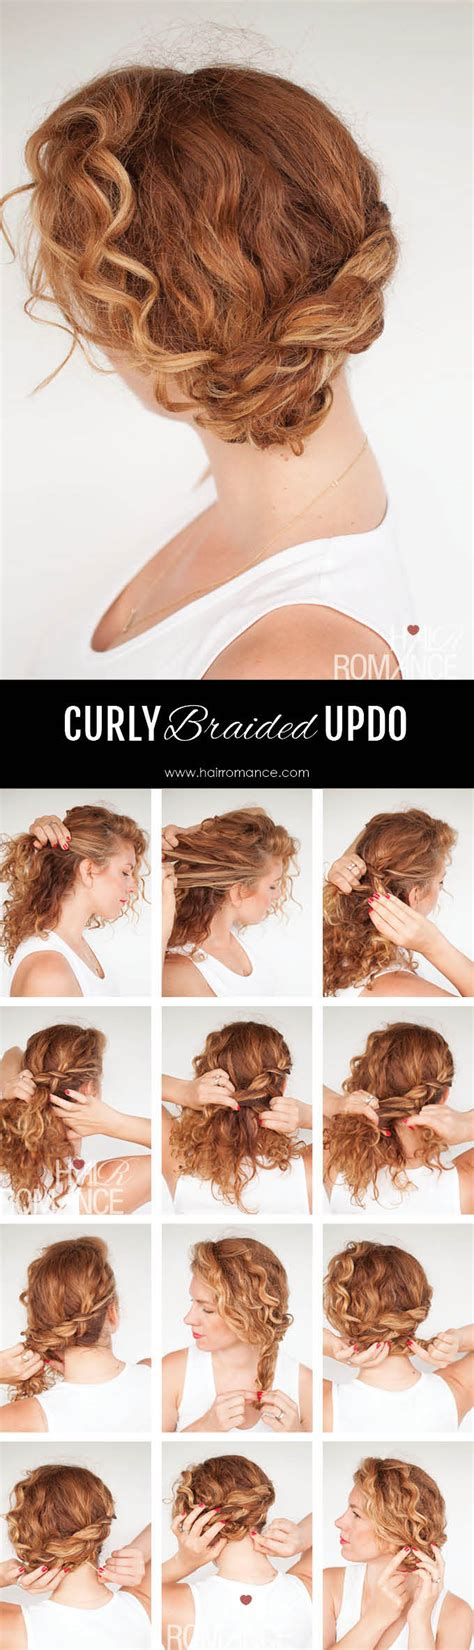 how to old fashion hair styles new curly hairstyle tutorial tips for braiding curly